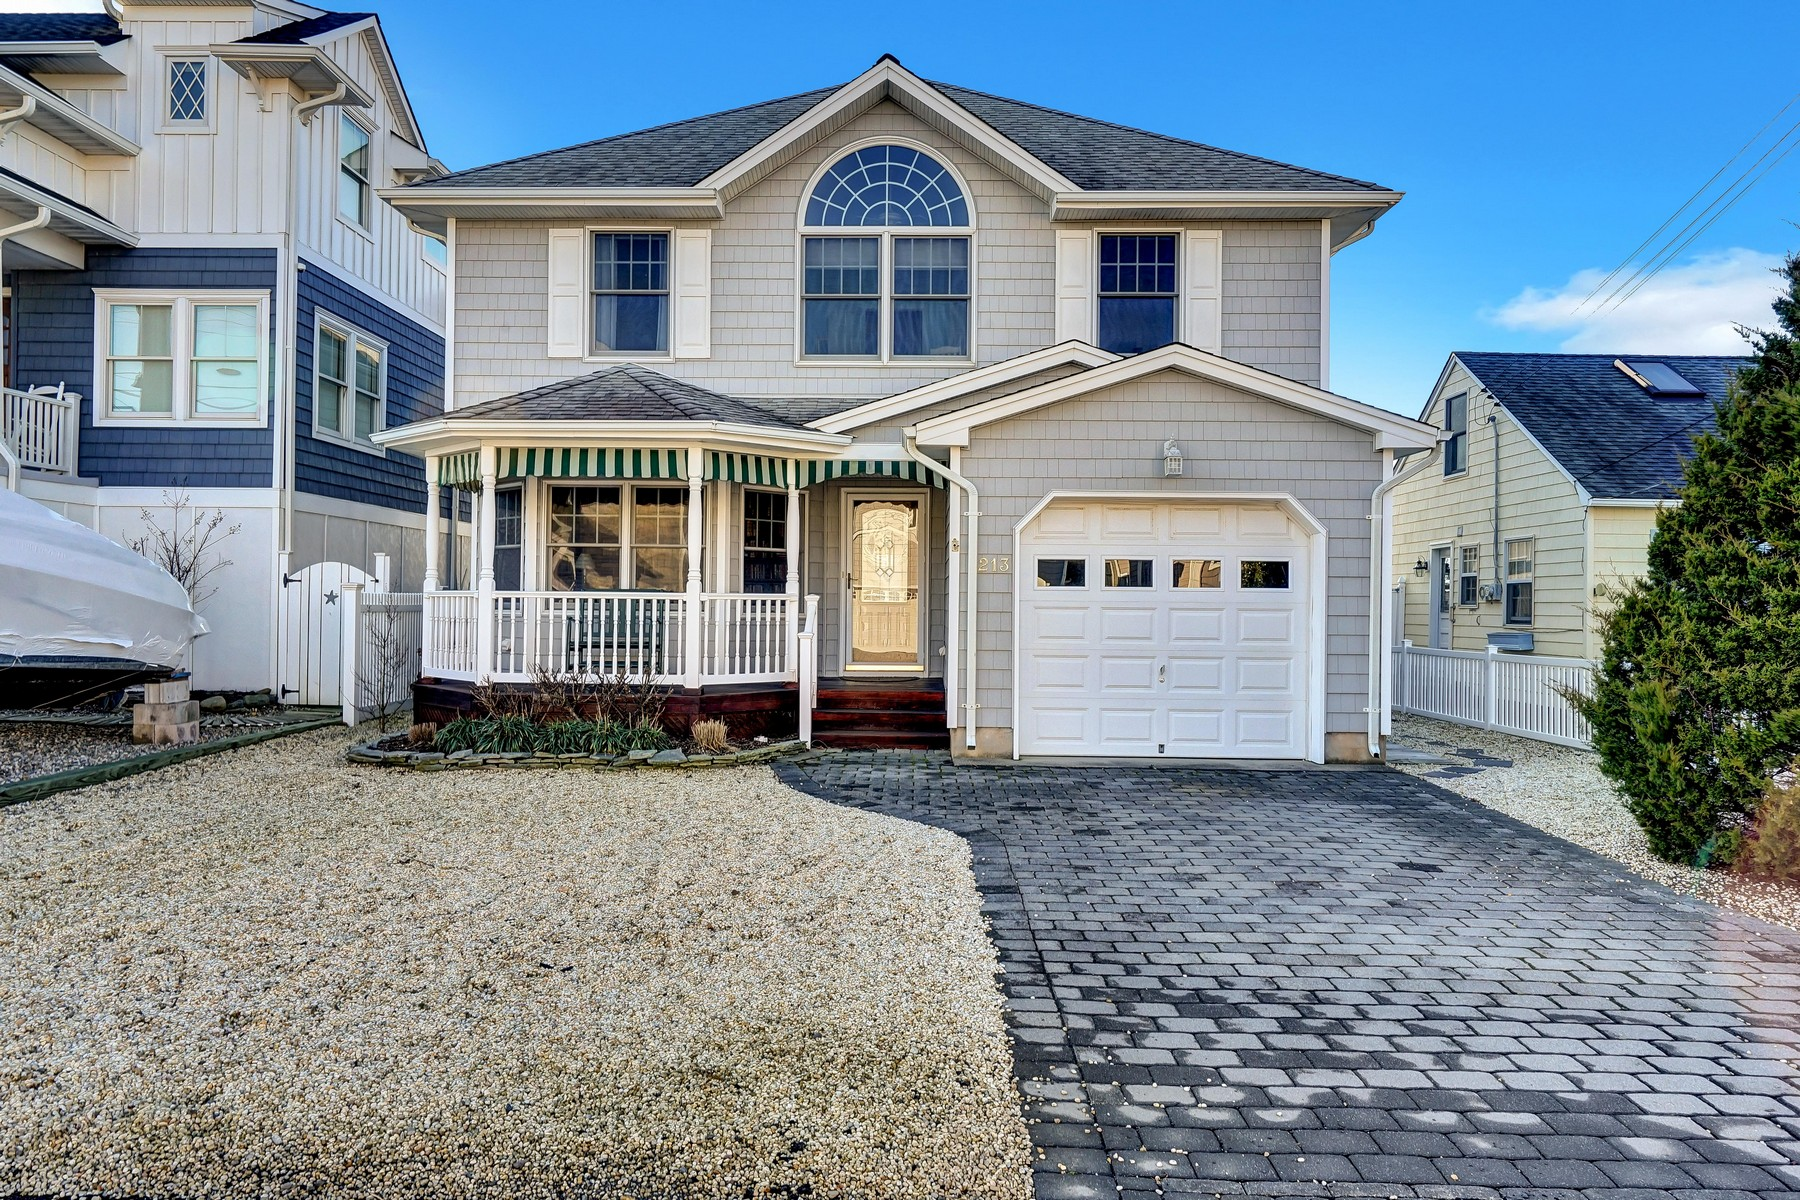 Moradia para Venda às Beautiful Waterfront Home With Direct Access To Barnegat Bay 213 Norman Court, Normandy Beach, Nova Jersey 08739 Estados Unidos